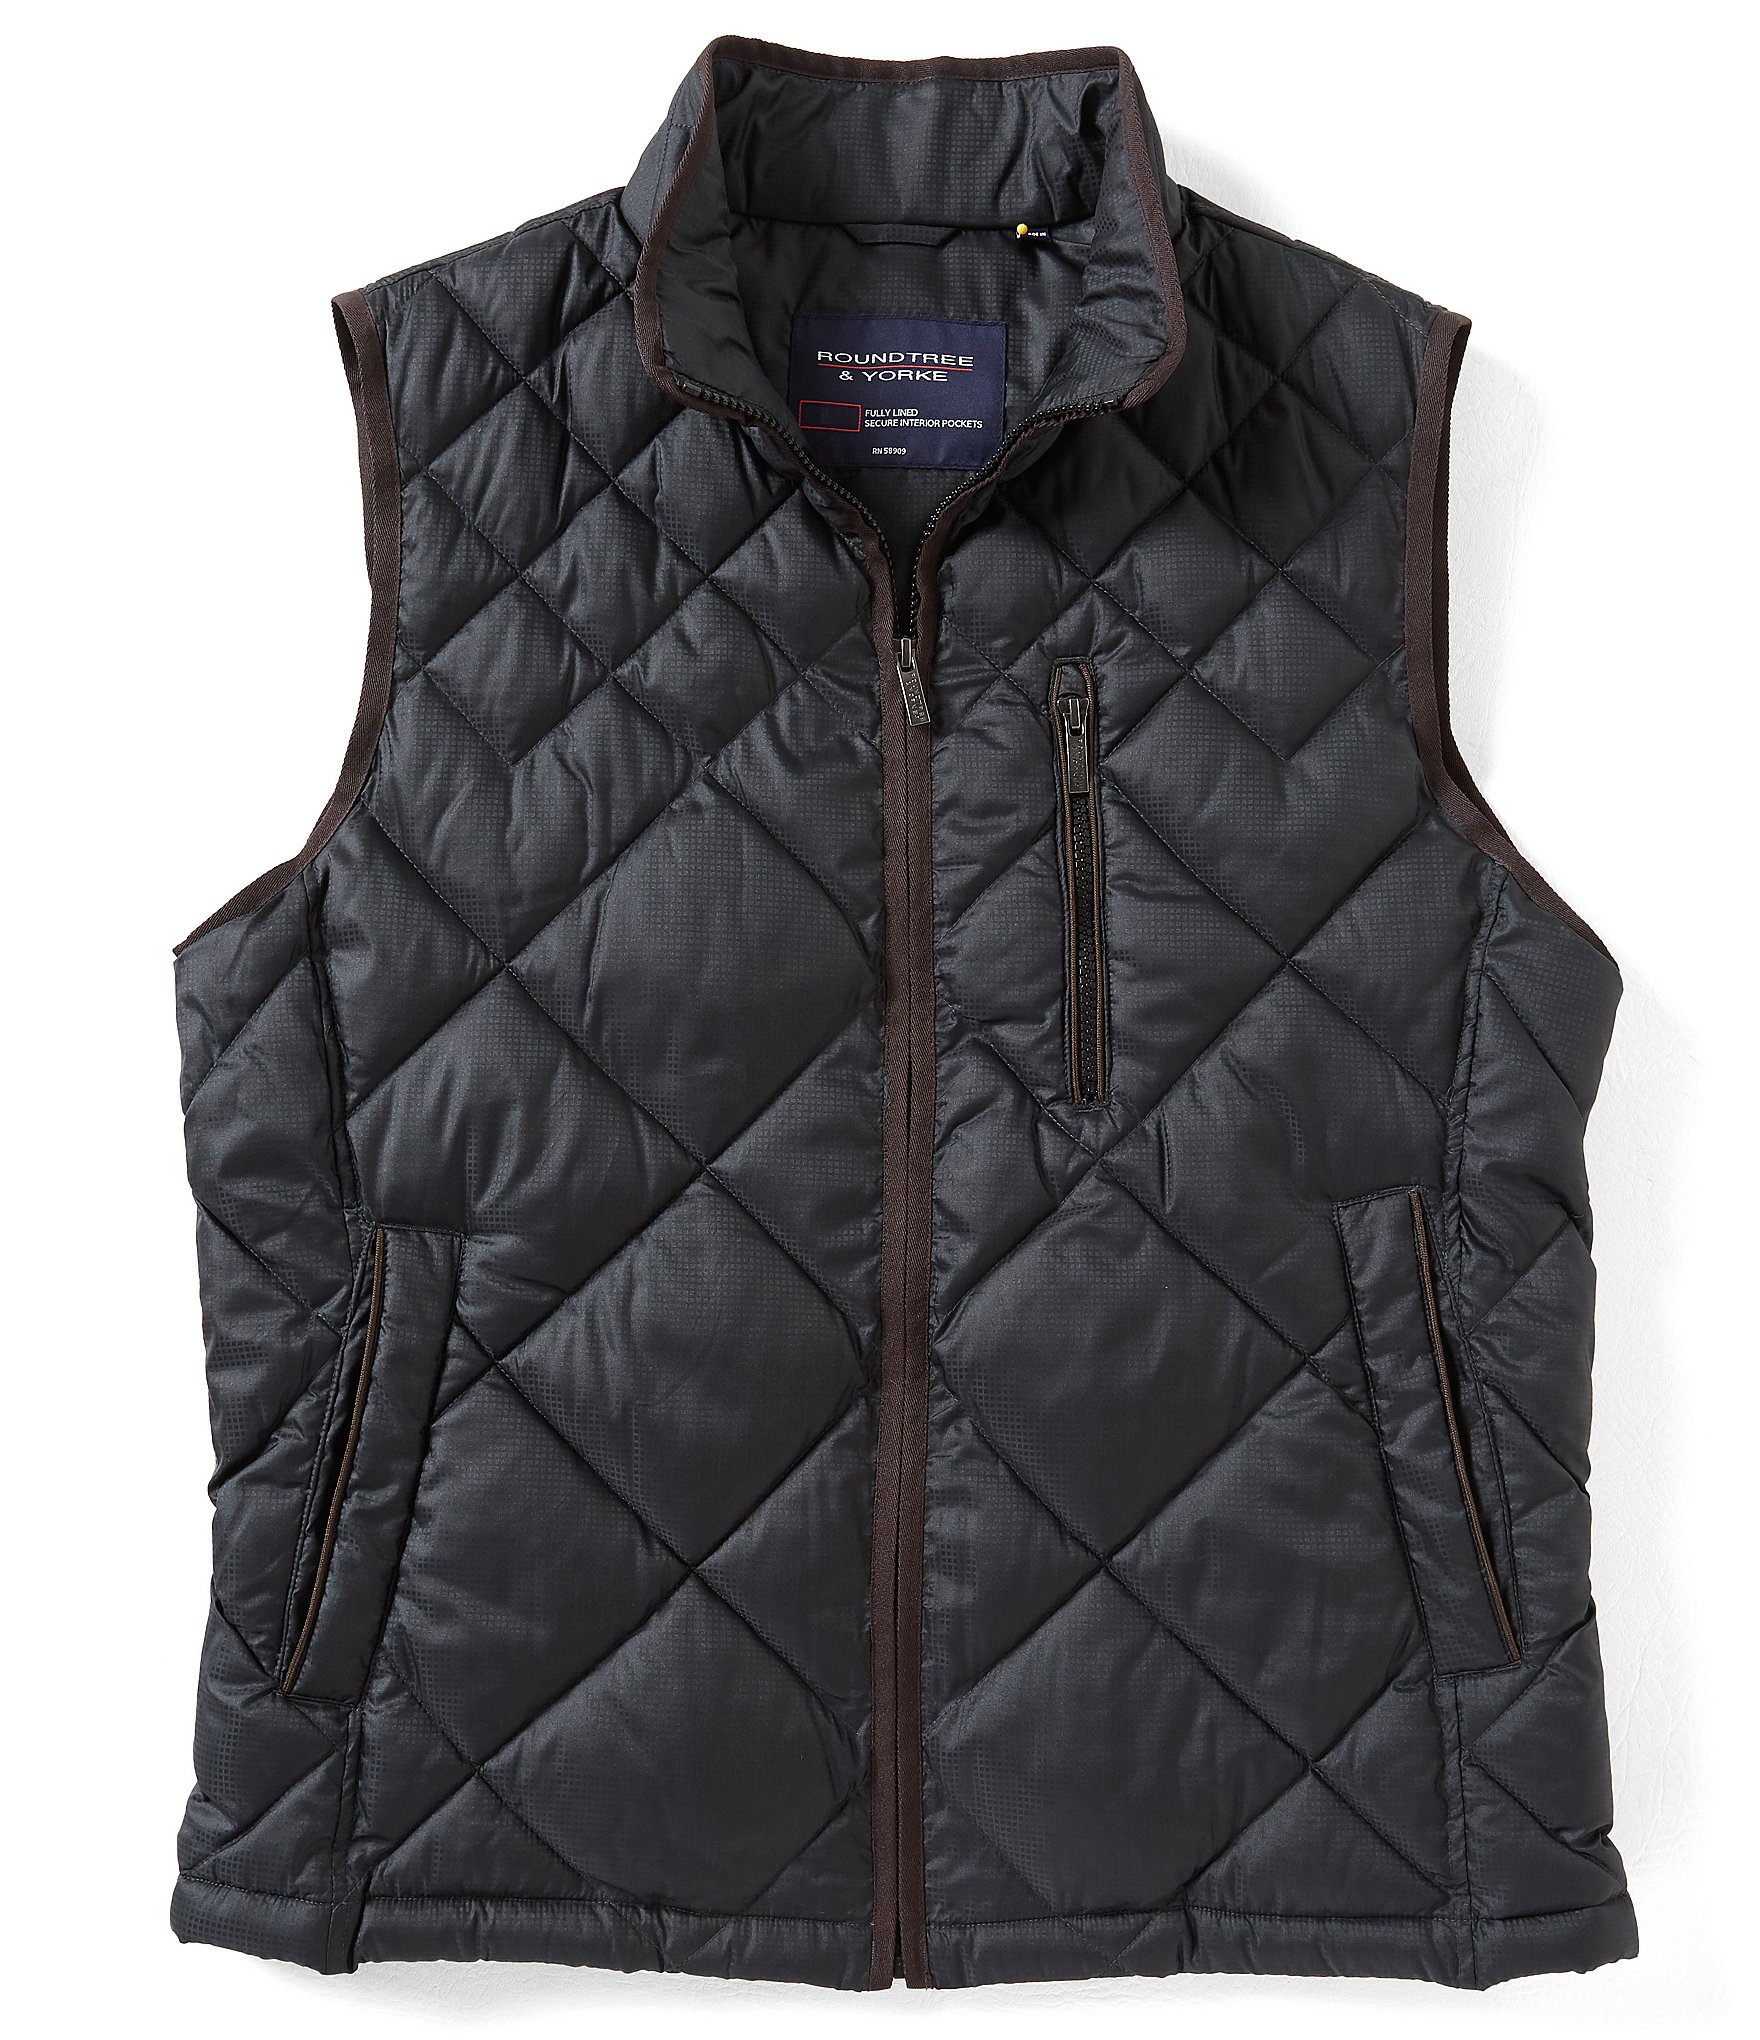 Roundtree and Yorke Men | Outerwear: Coats, Jackets & Vests ...